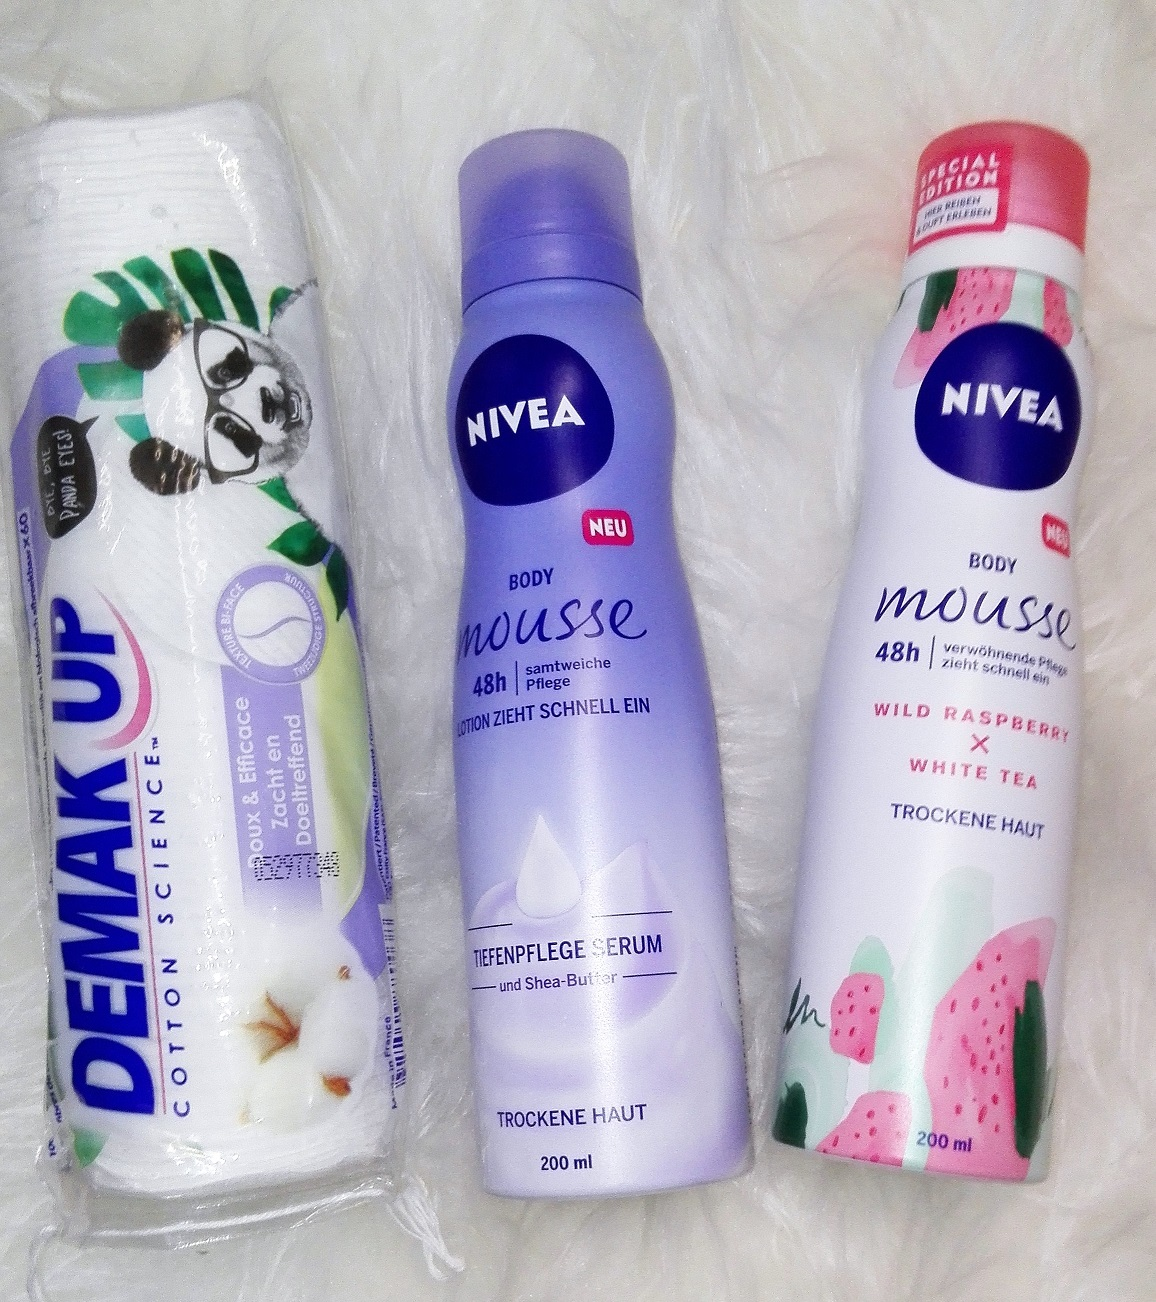 Nivea Body Mousse Produkte im Test